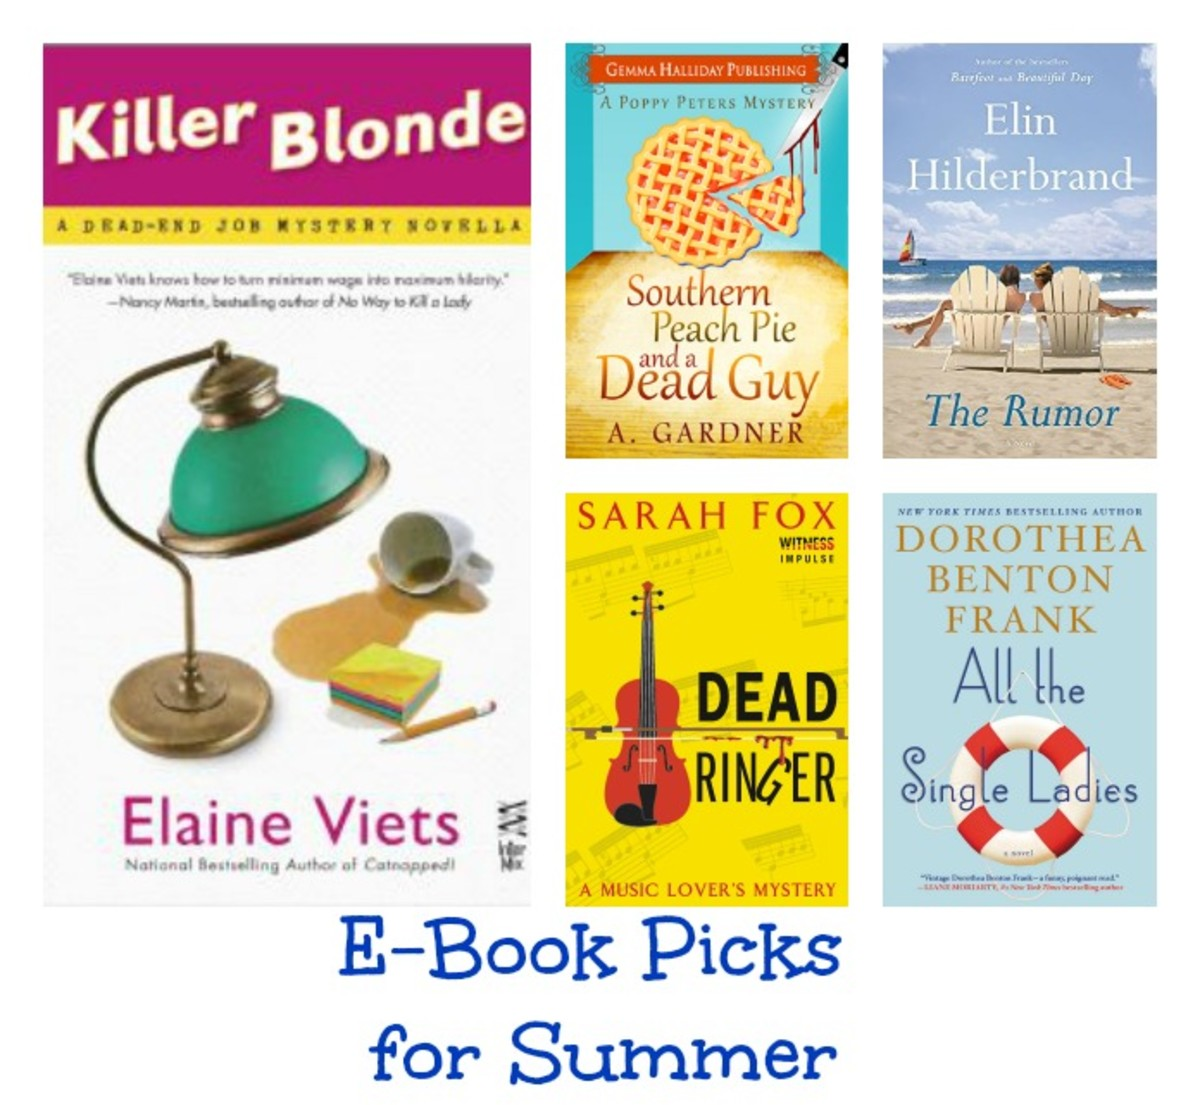 E-Book Picks for Summer